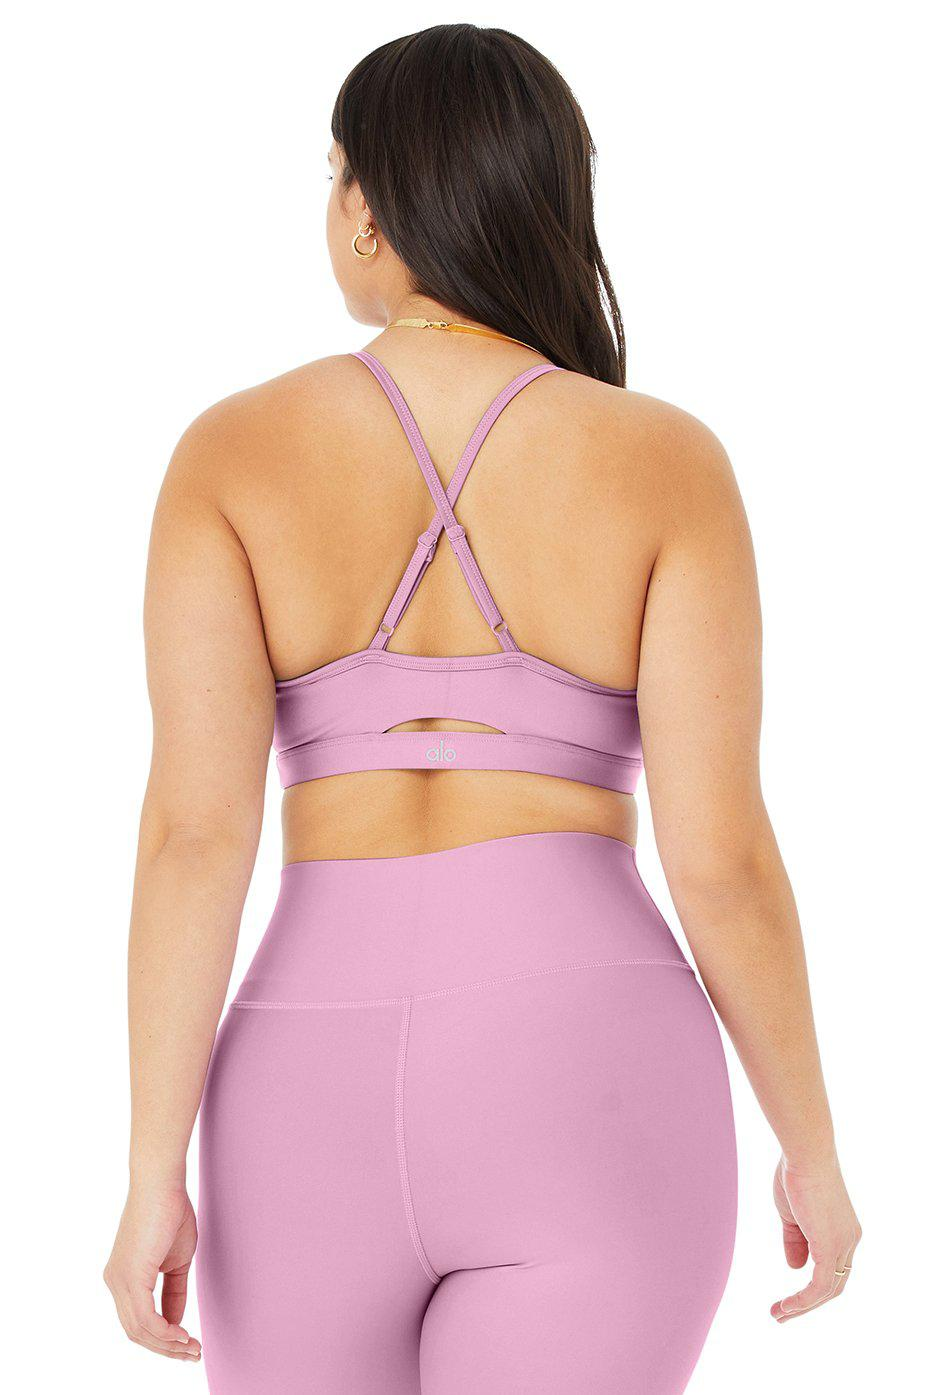 Airlift Intrigue Bra - Pink Lavender 8